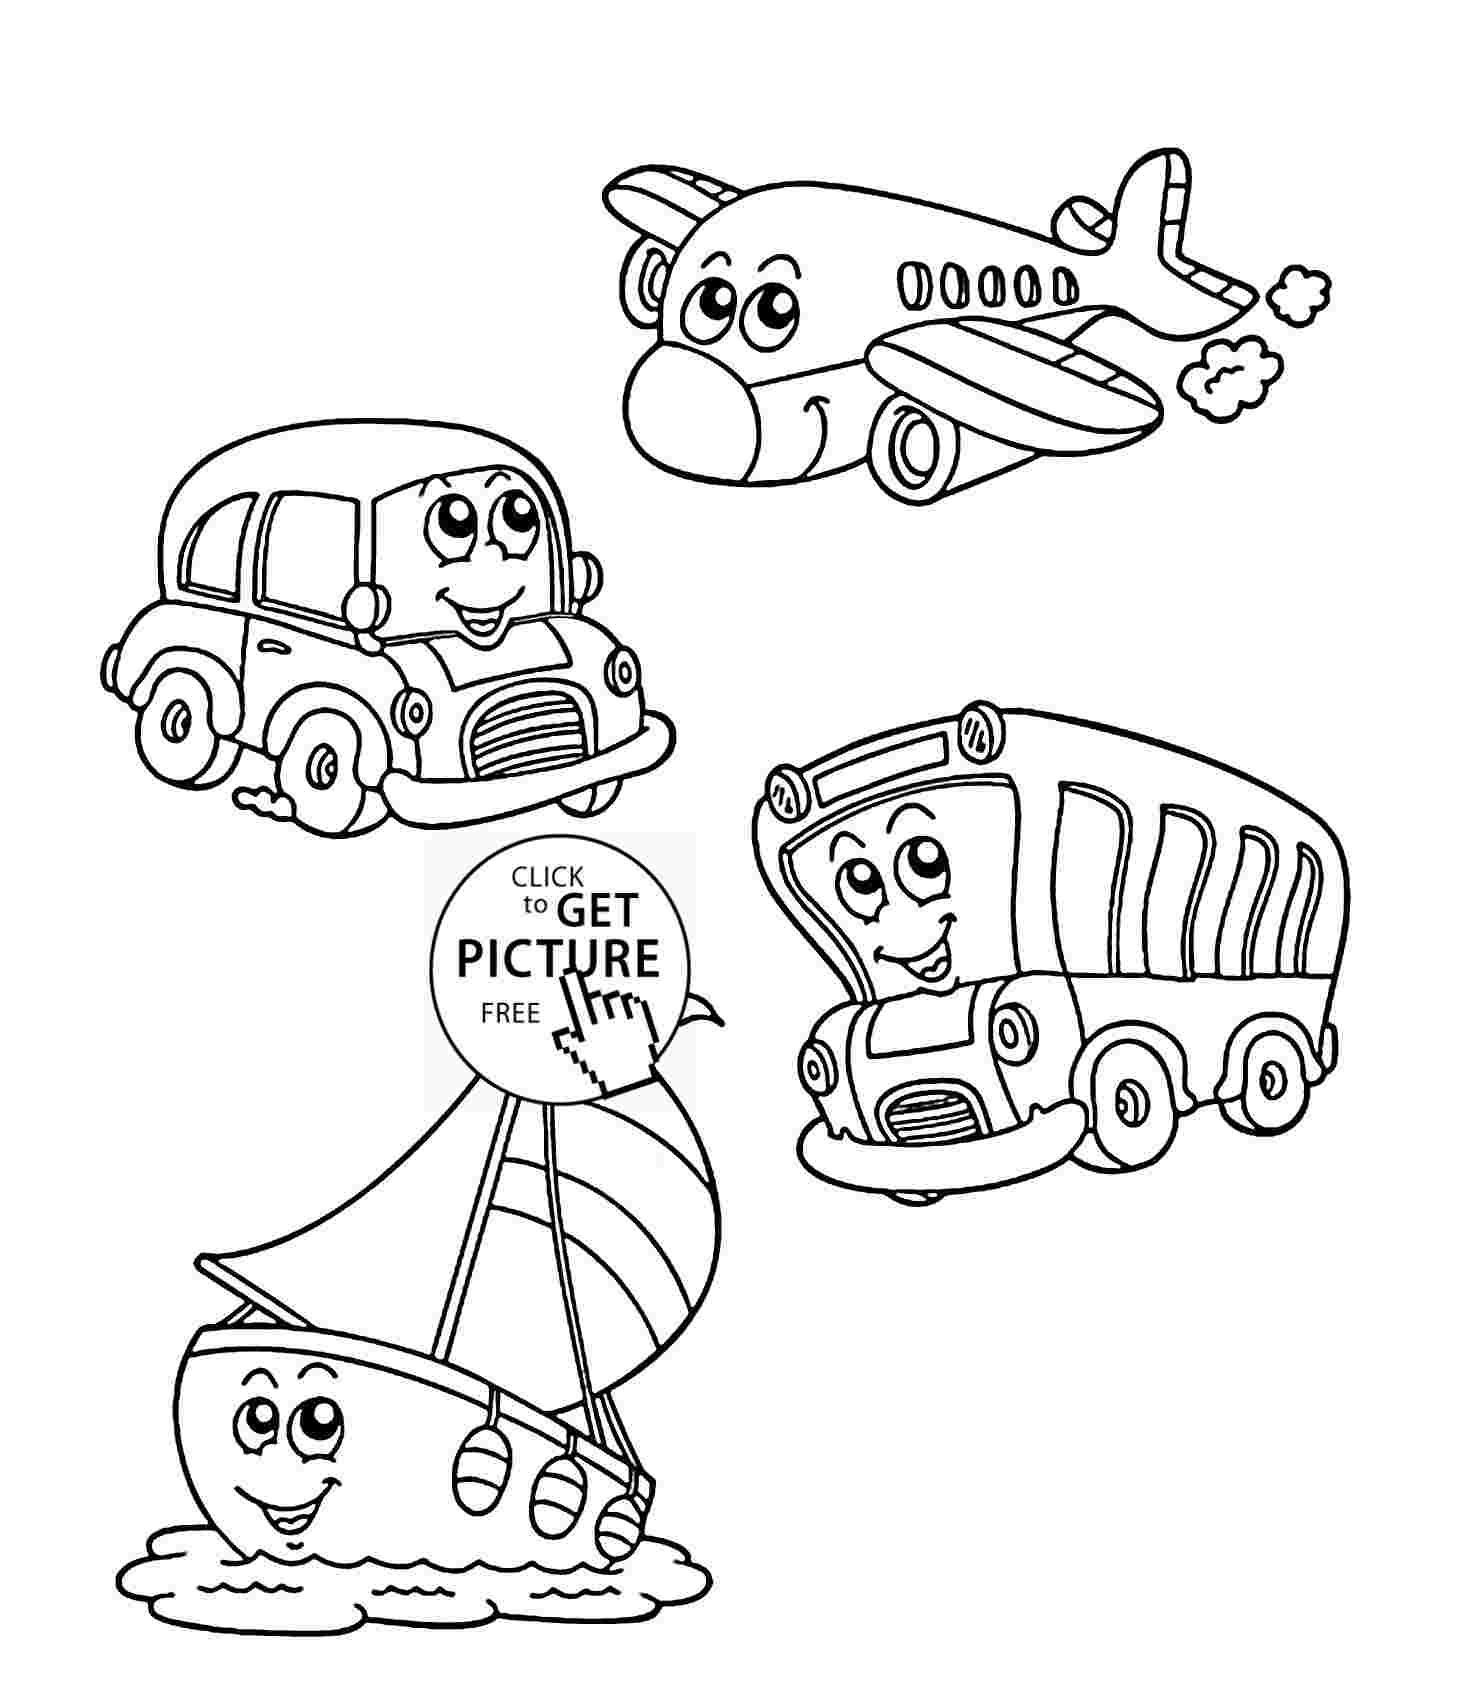 Pin On Kindergarten Coloring Pages